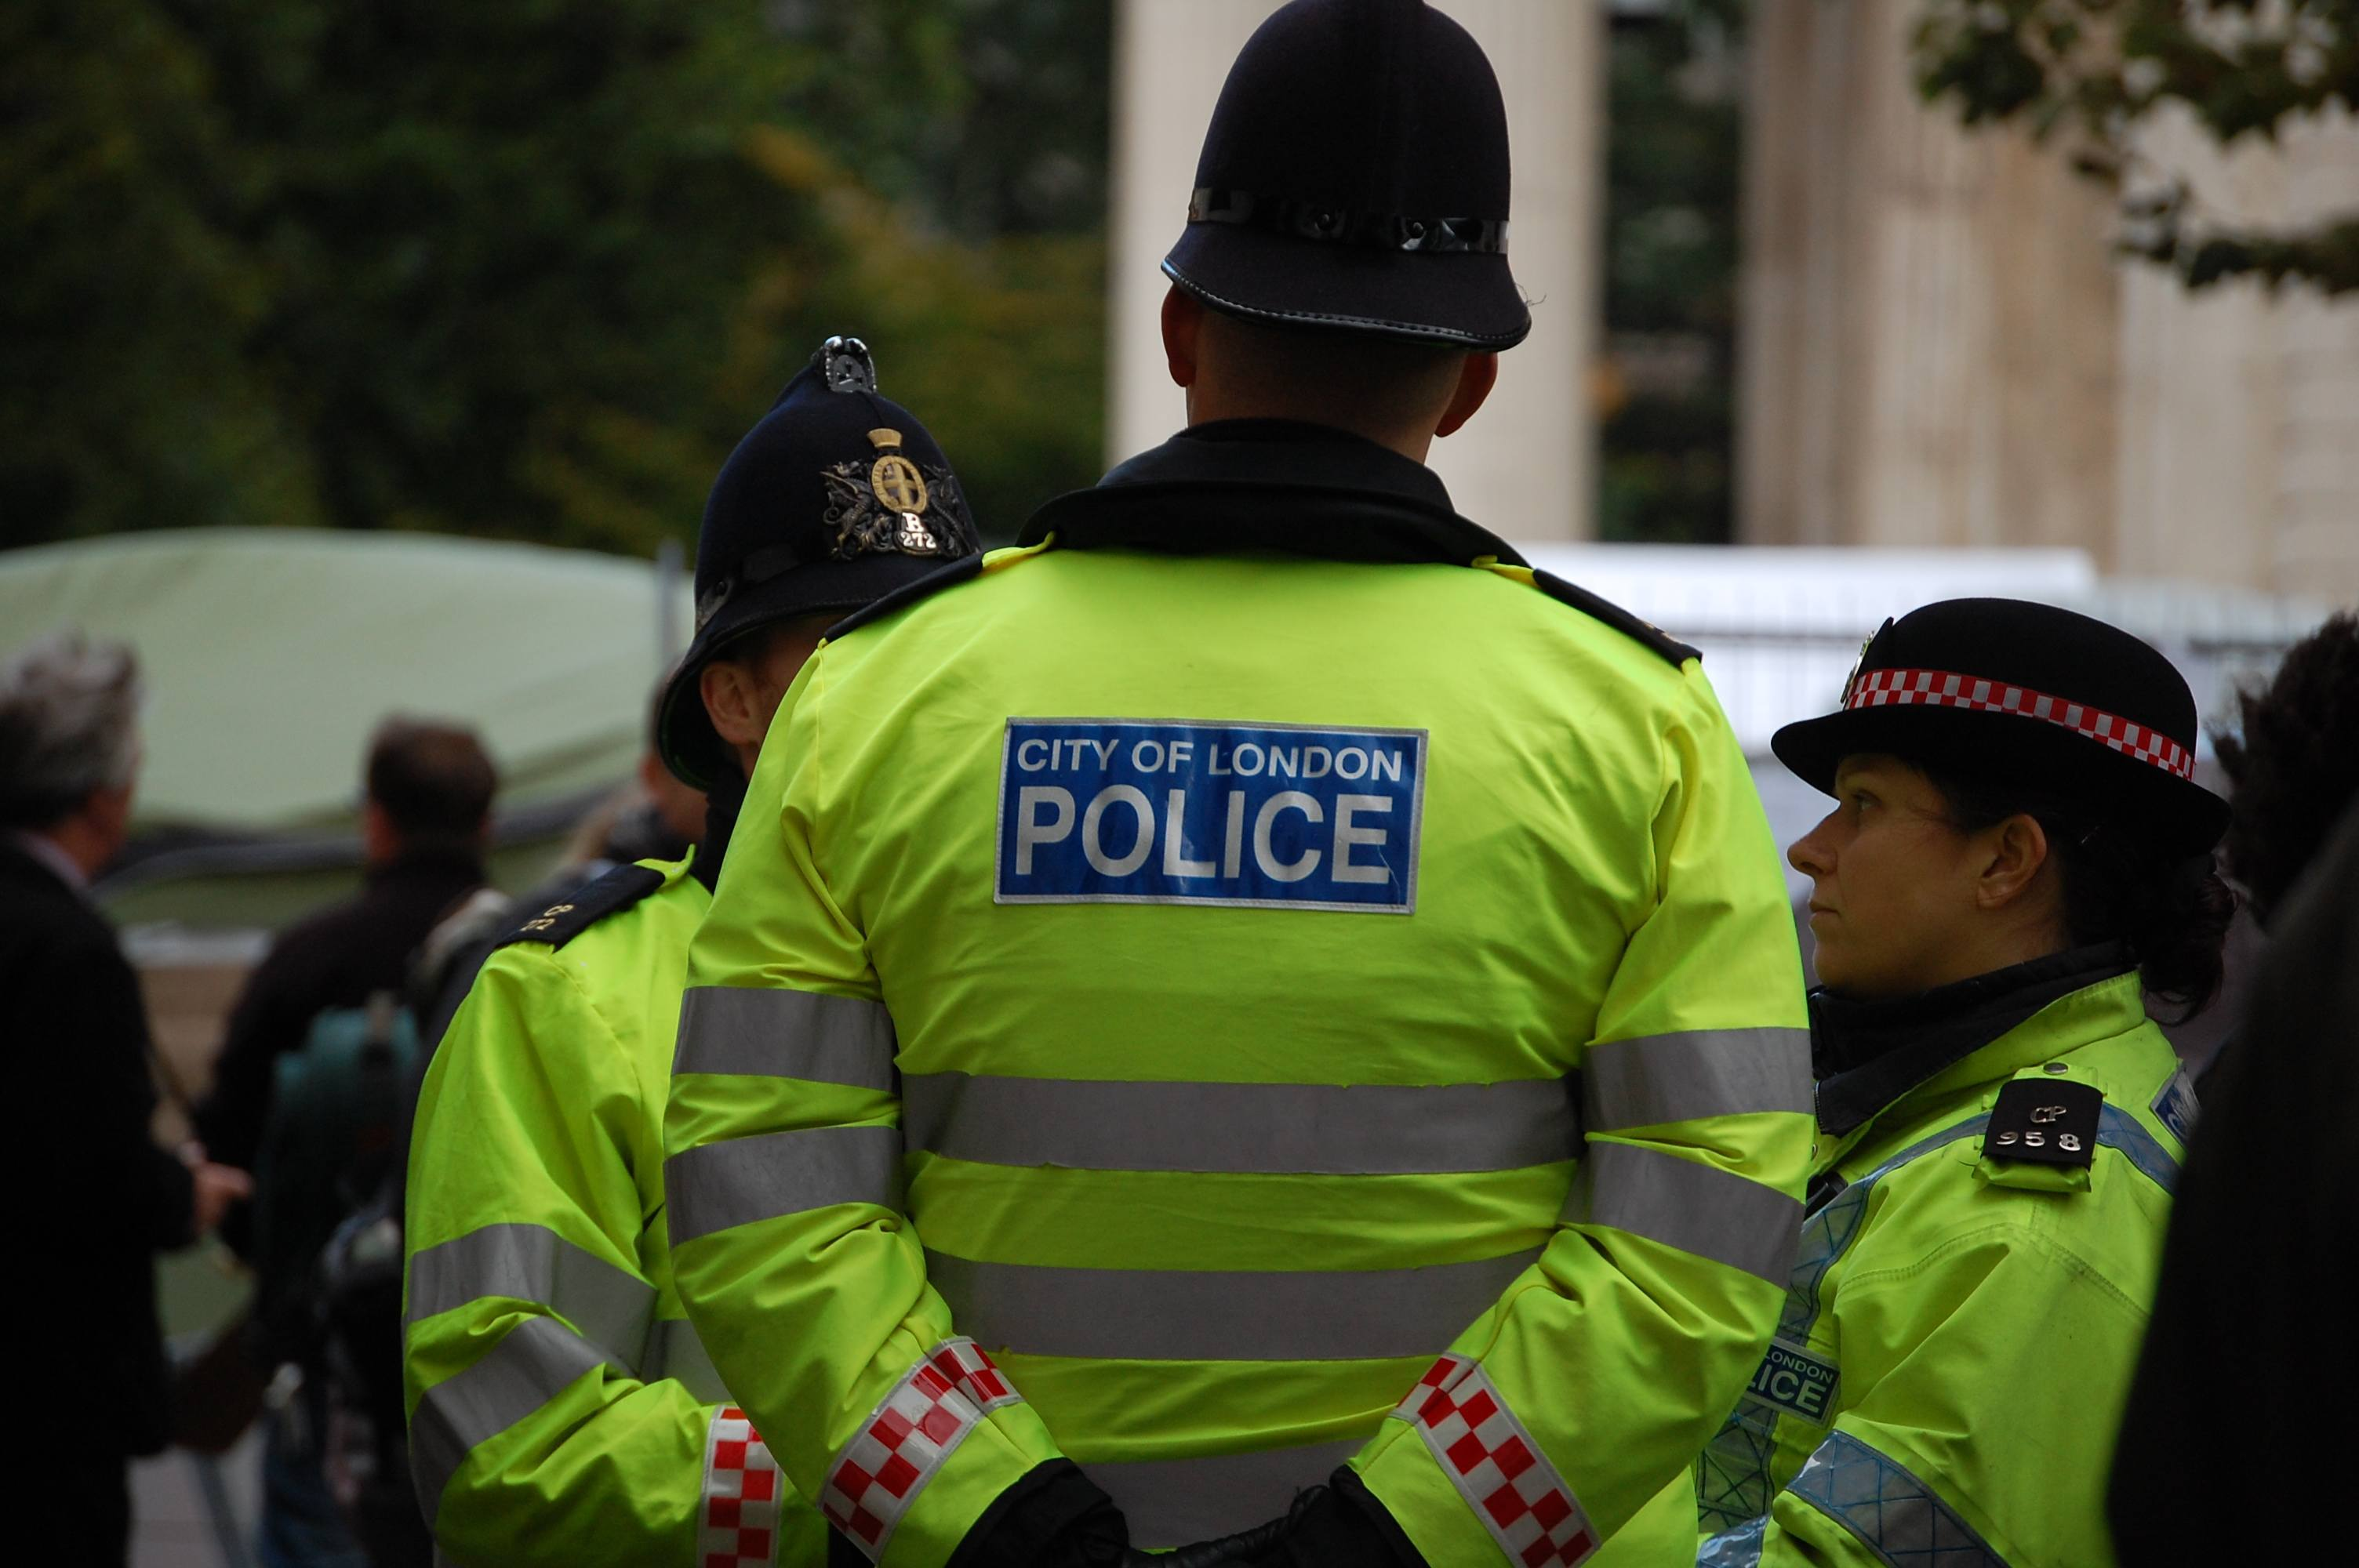 1,600 Police Officers Have Been Arrested For Criminal Offences In Last Five Years UNILAD police crime 18